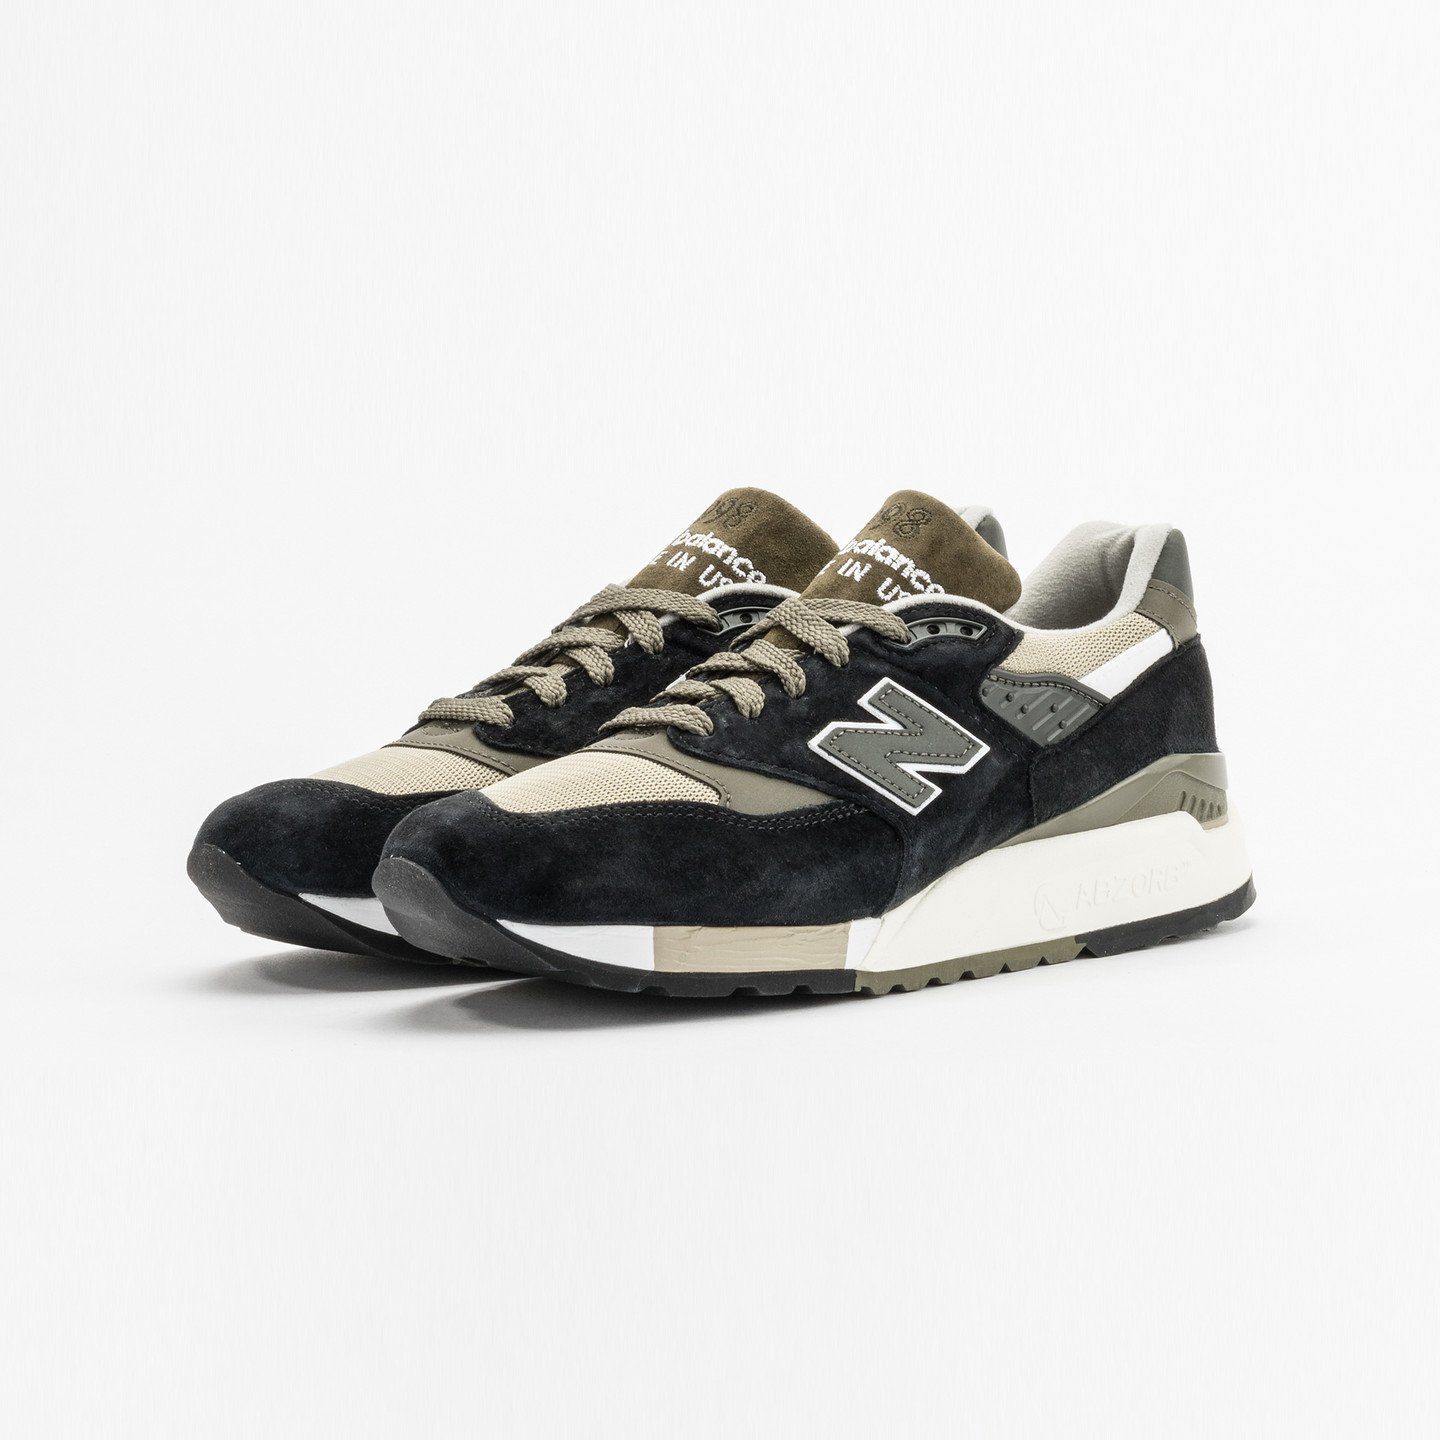 New Balance M998 Made in USA Olive / Black M998CTR-43